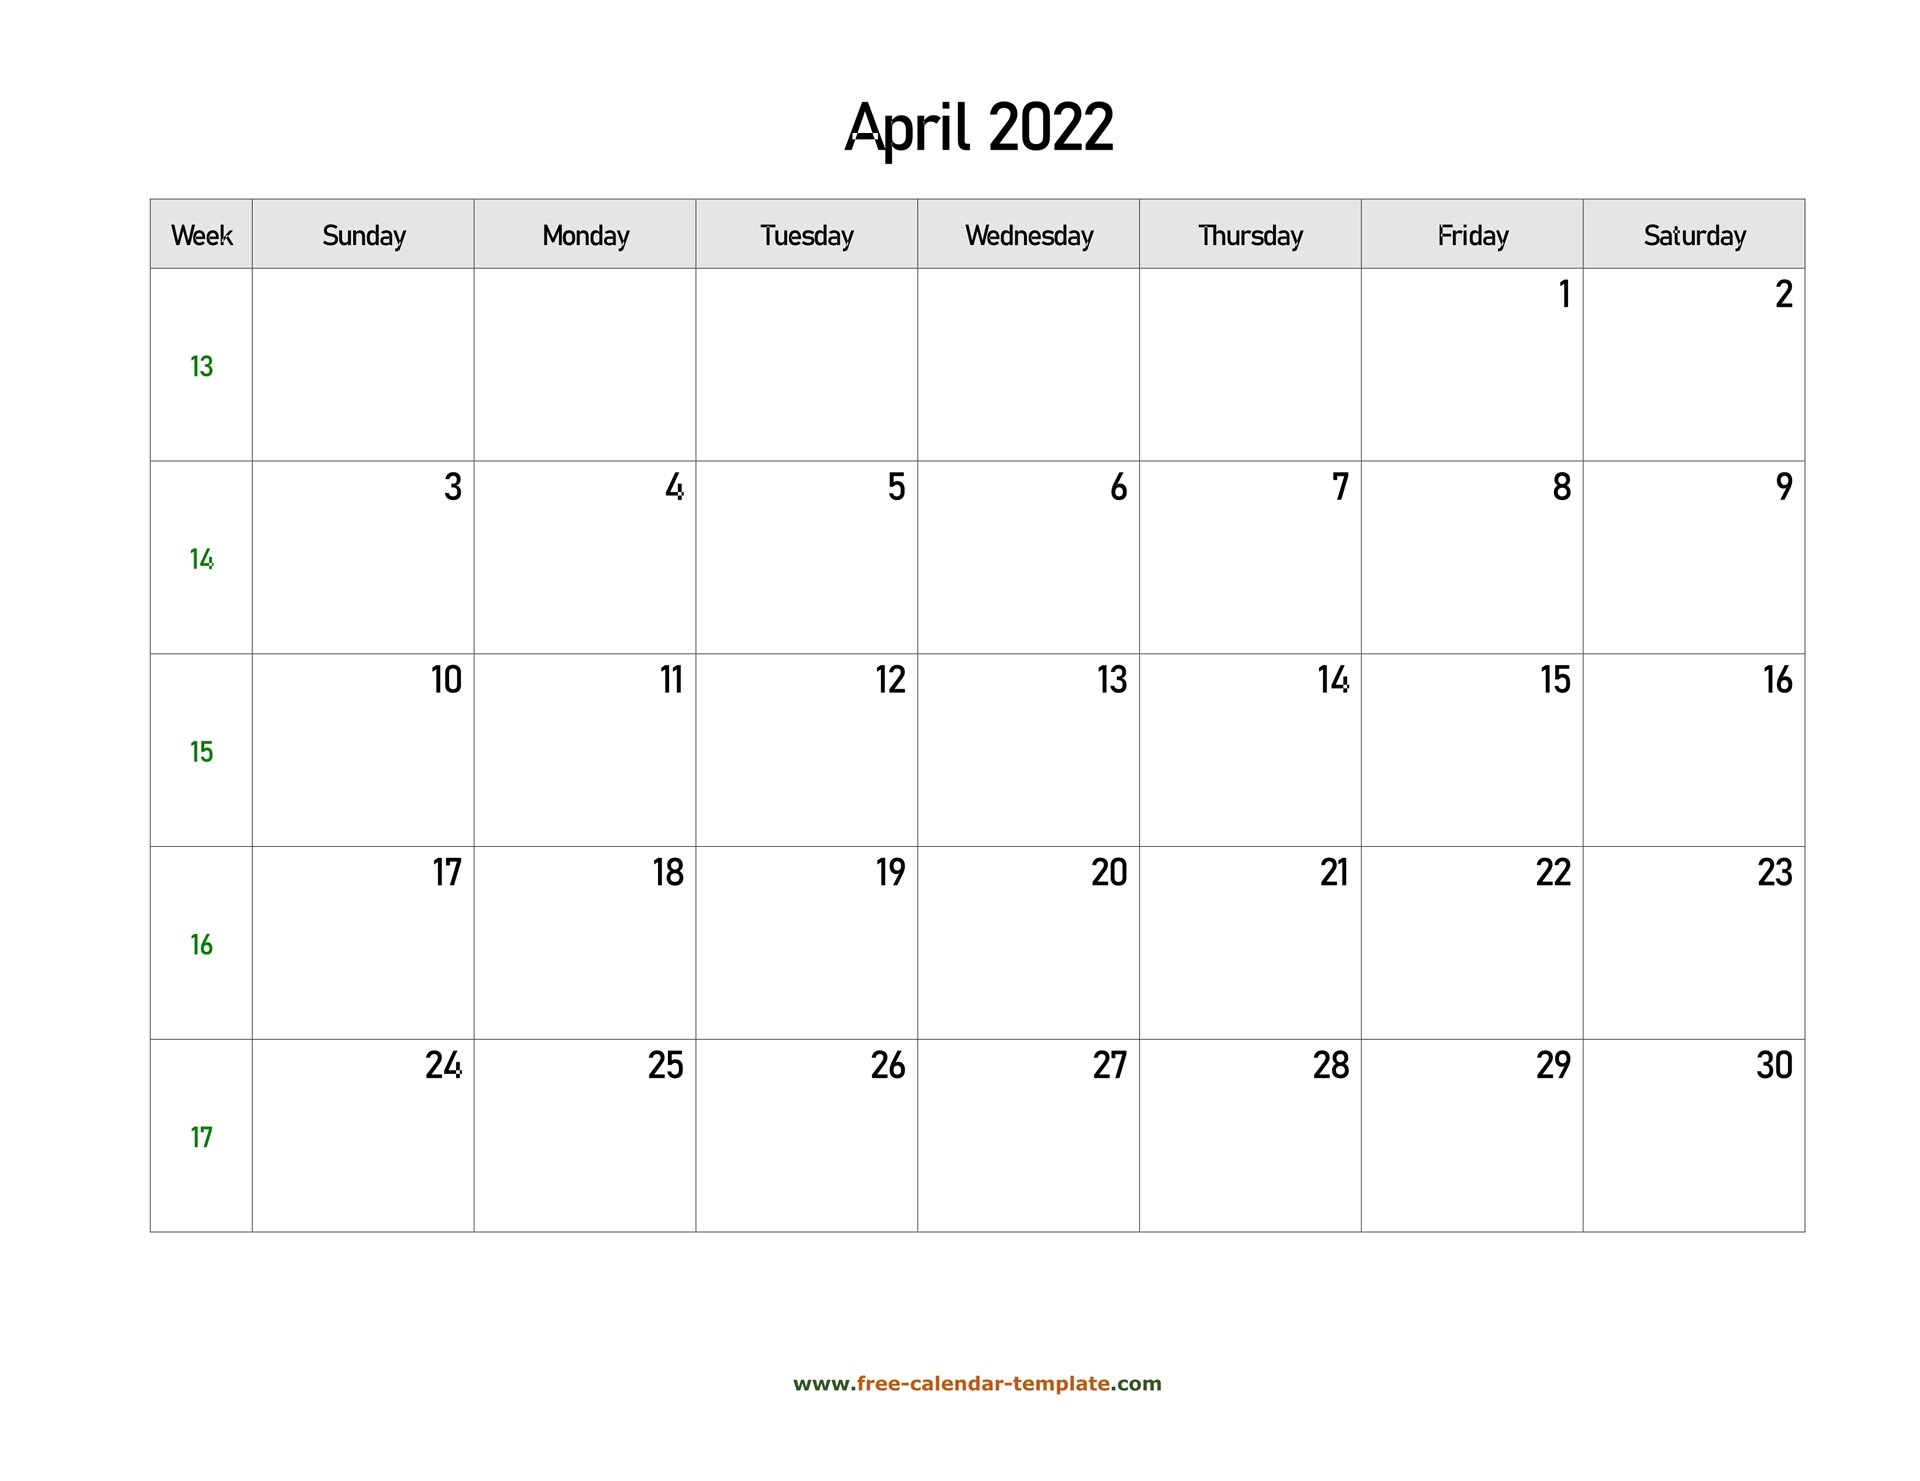 Free 2022 Calendar Blank April Template (Horizontal intended for April Monthly Calendar 2022 Free Printable